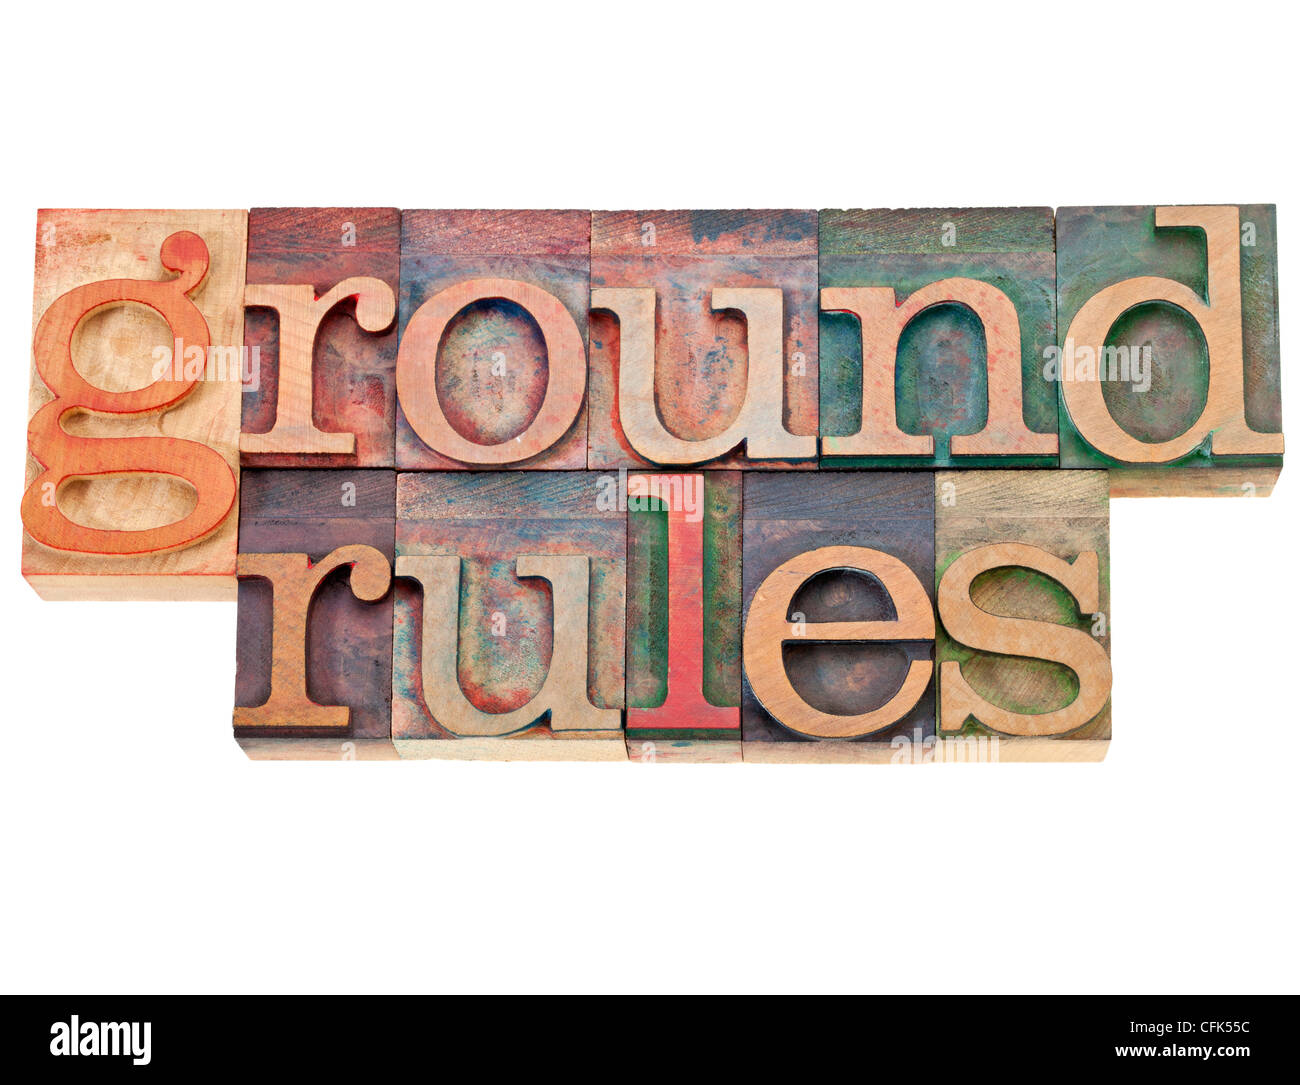 ground rules - isolated phrase in vintage letterpress wood type - Stock Image